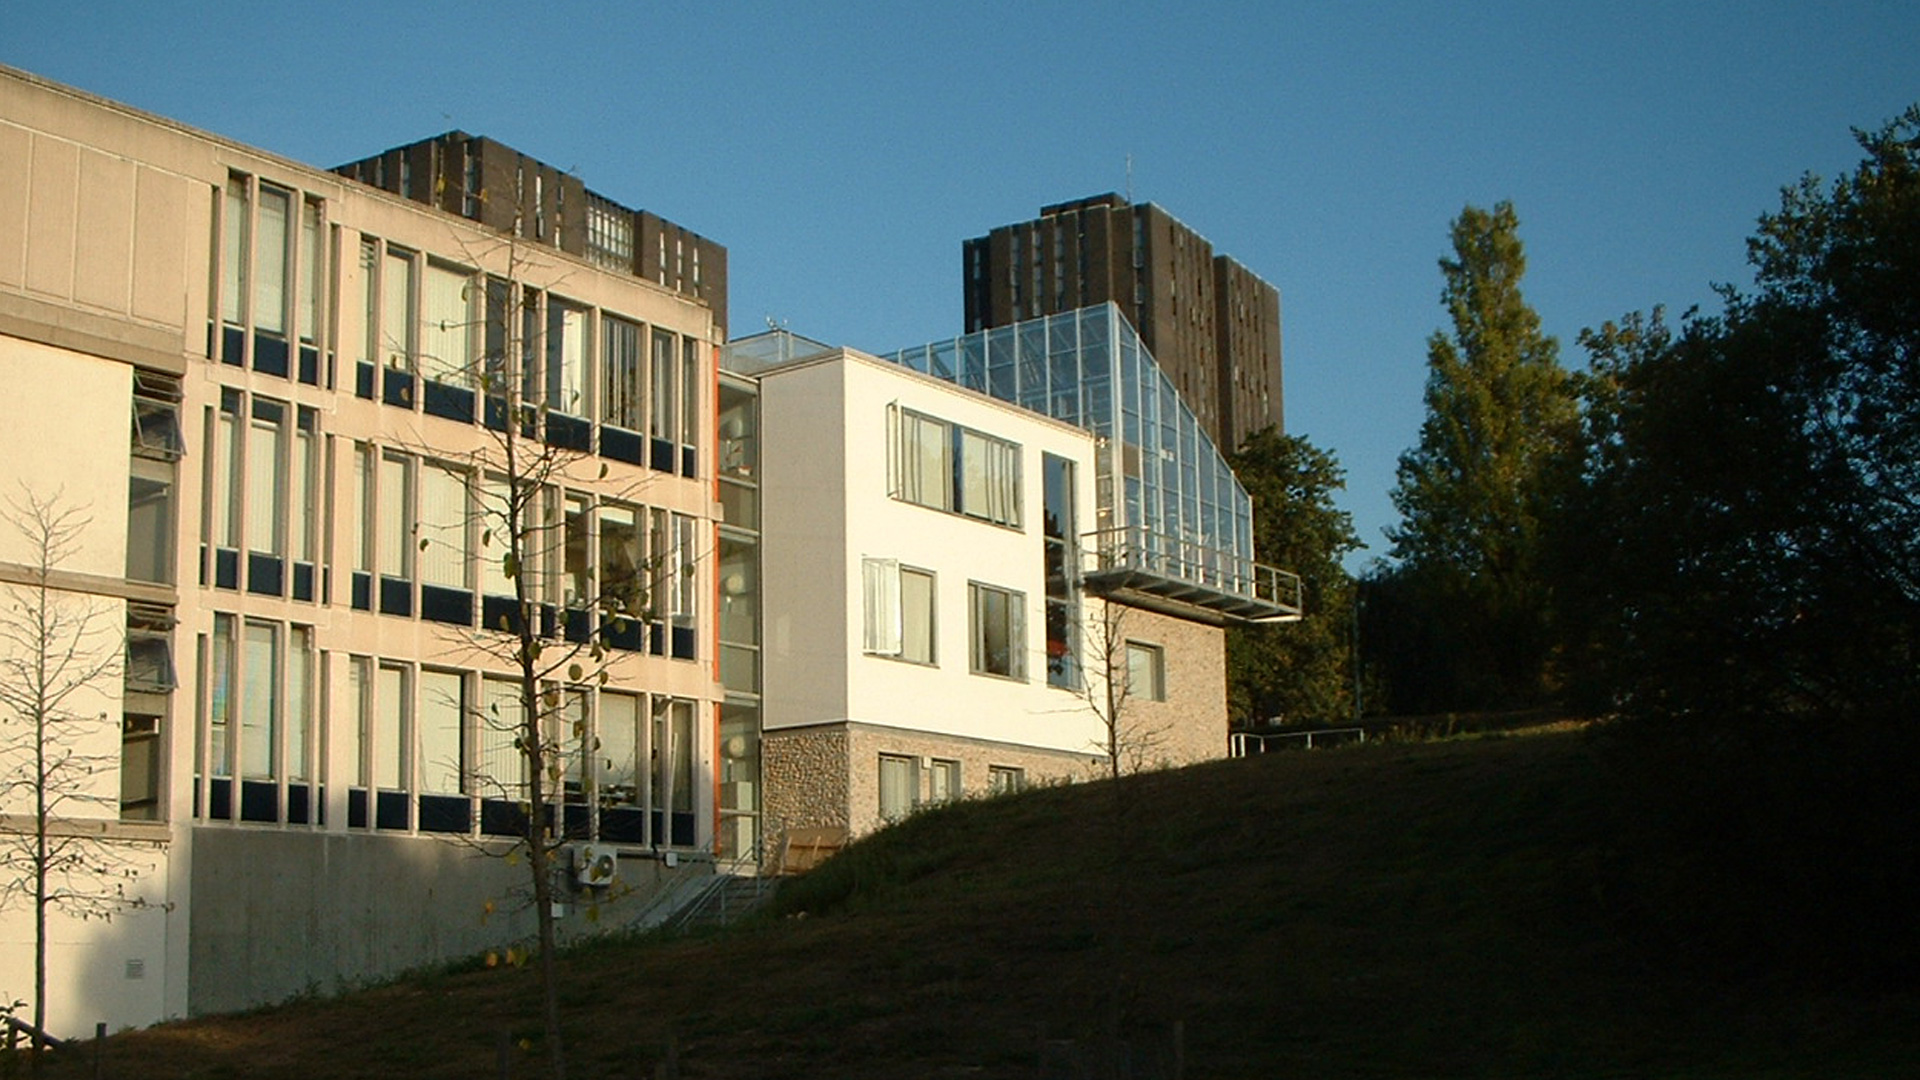 cs-biological-sciences-university-of-essex